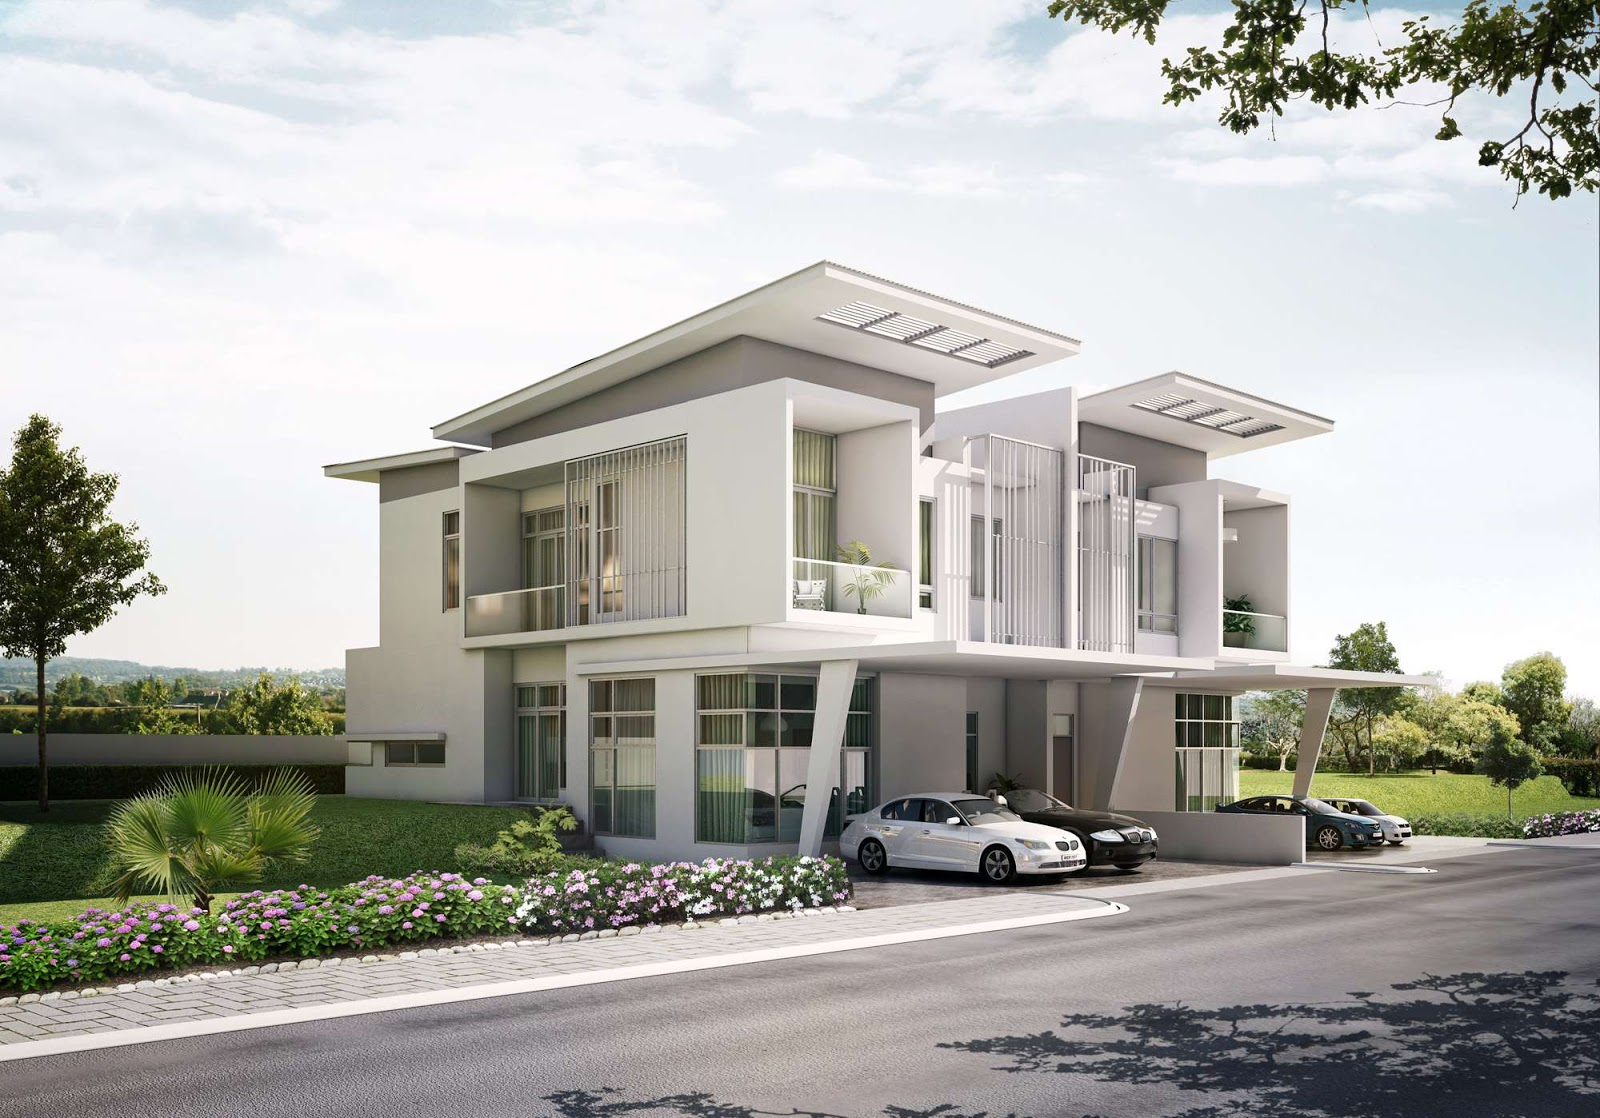 New home designs latest singapore modern homes exterior for Latest house designs photos